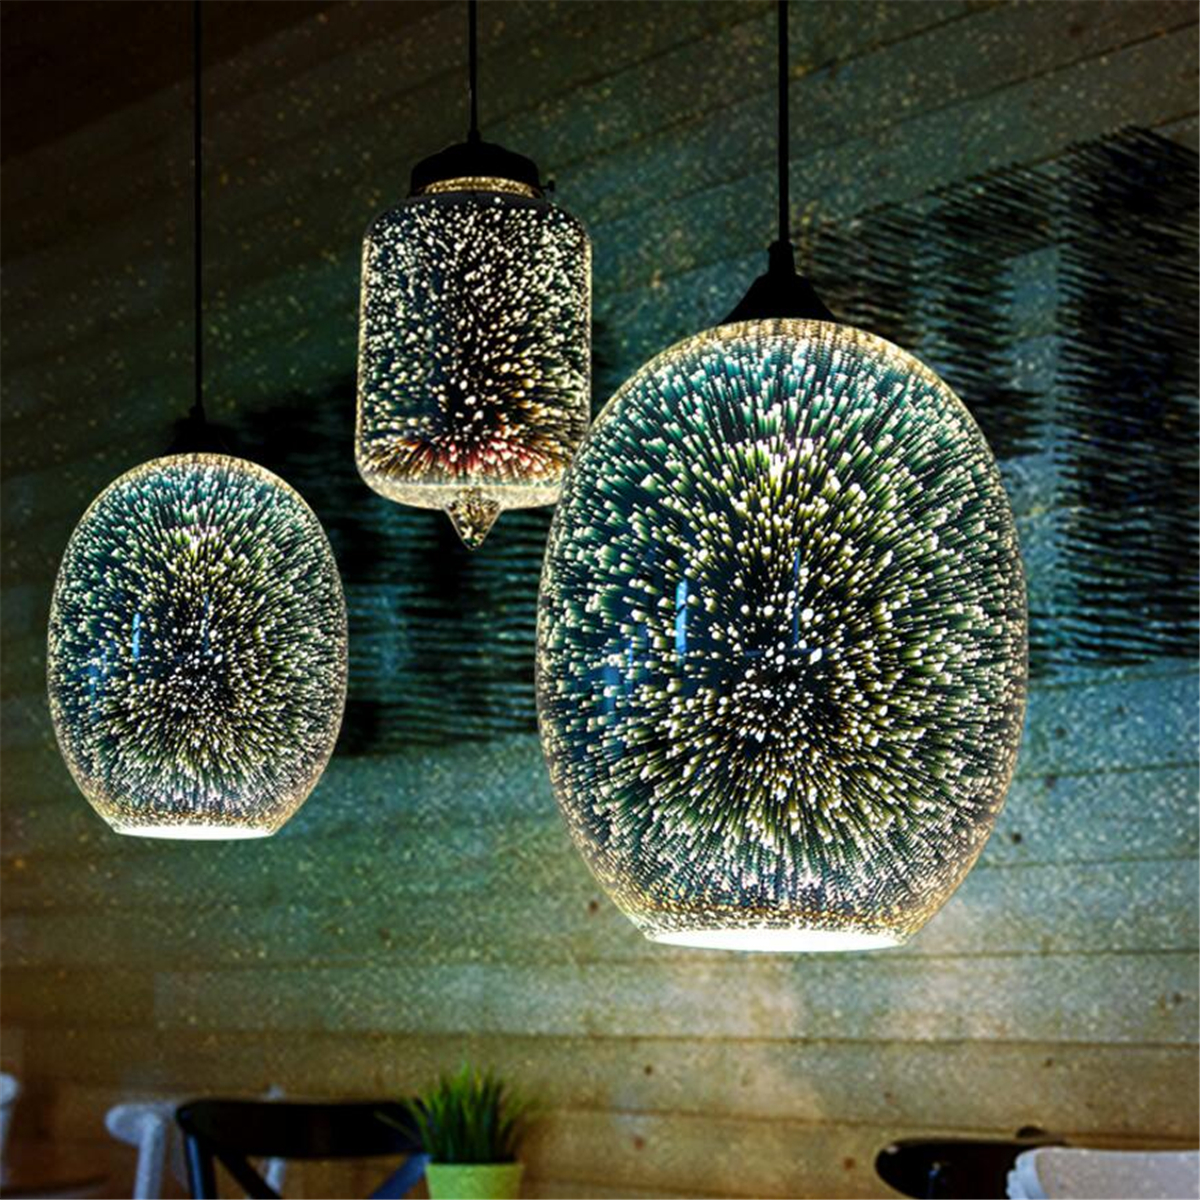 Modern Creativity 3D Art Glass Ceiling Light Chandelier Pendant Lamp for Living Room Dining Room Bedroom Exhibition Hall Bar Cafe